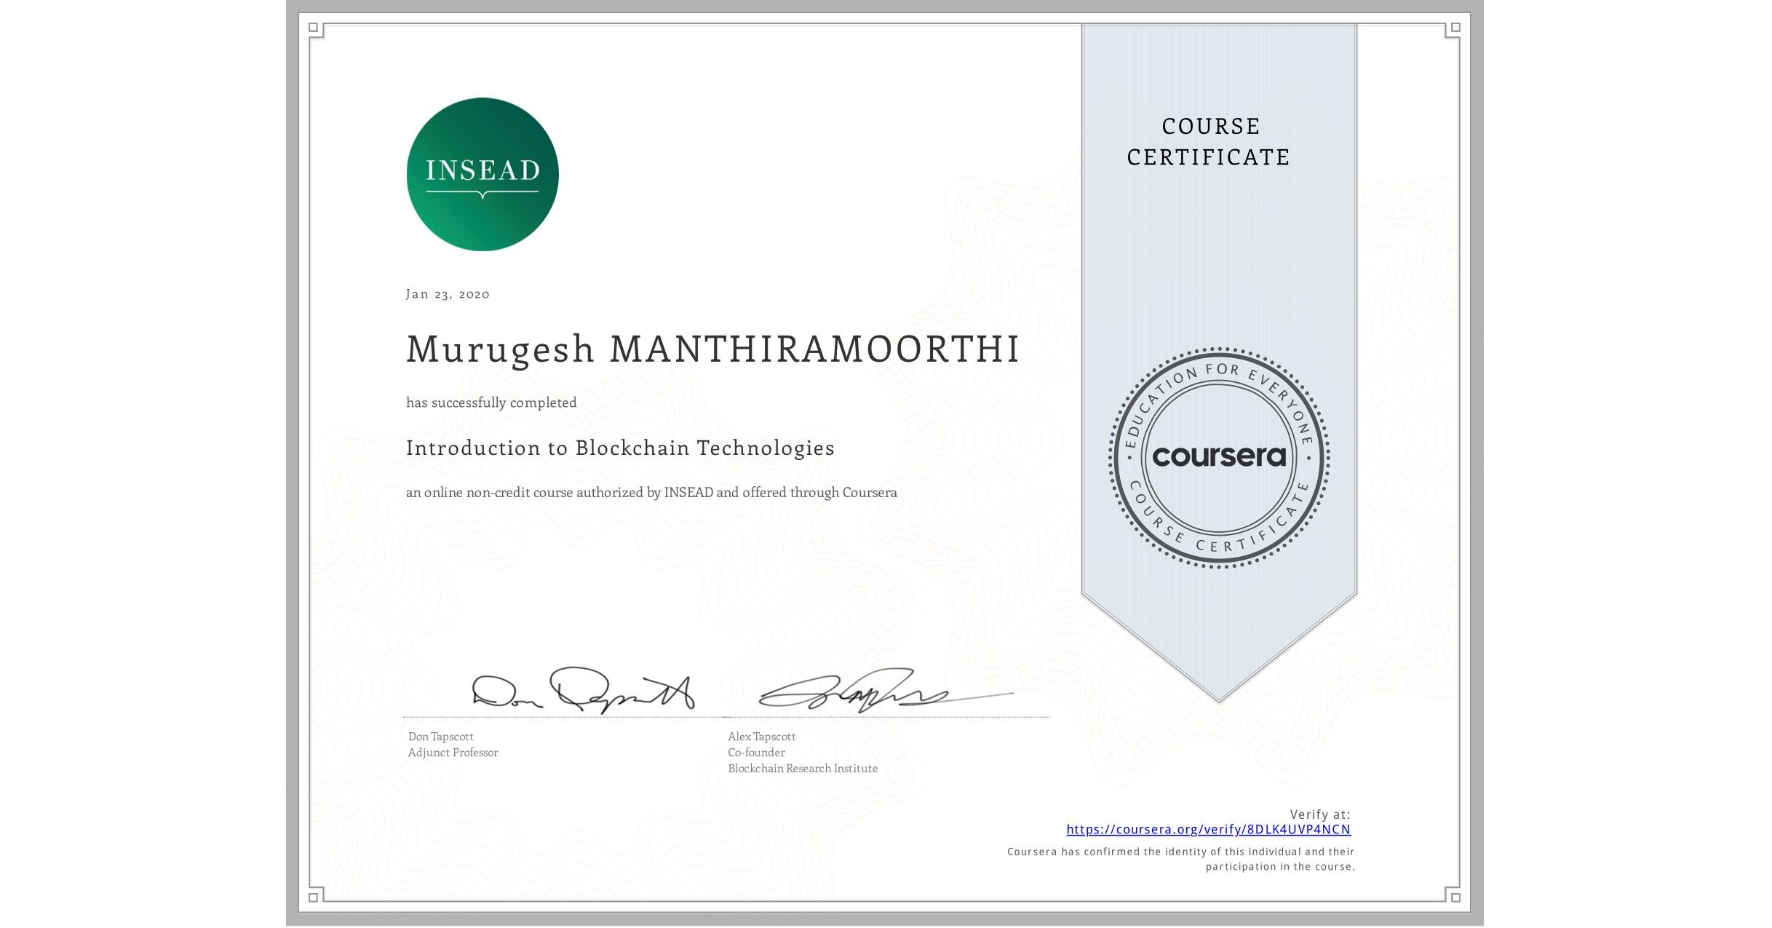 View certificate for Murugesh Manthiramoorthi, Introduction to Blockchain Technologies, an online non-credit course authorized by INSEAD and offered through Coursera